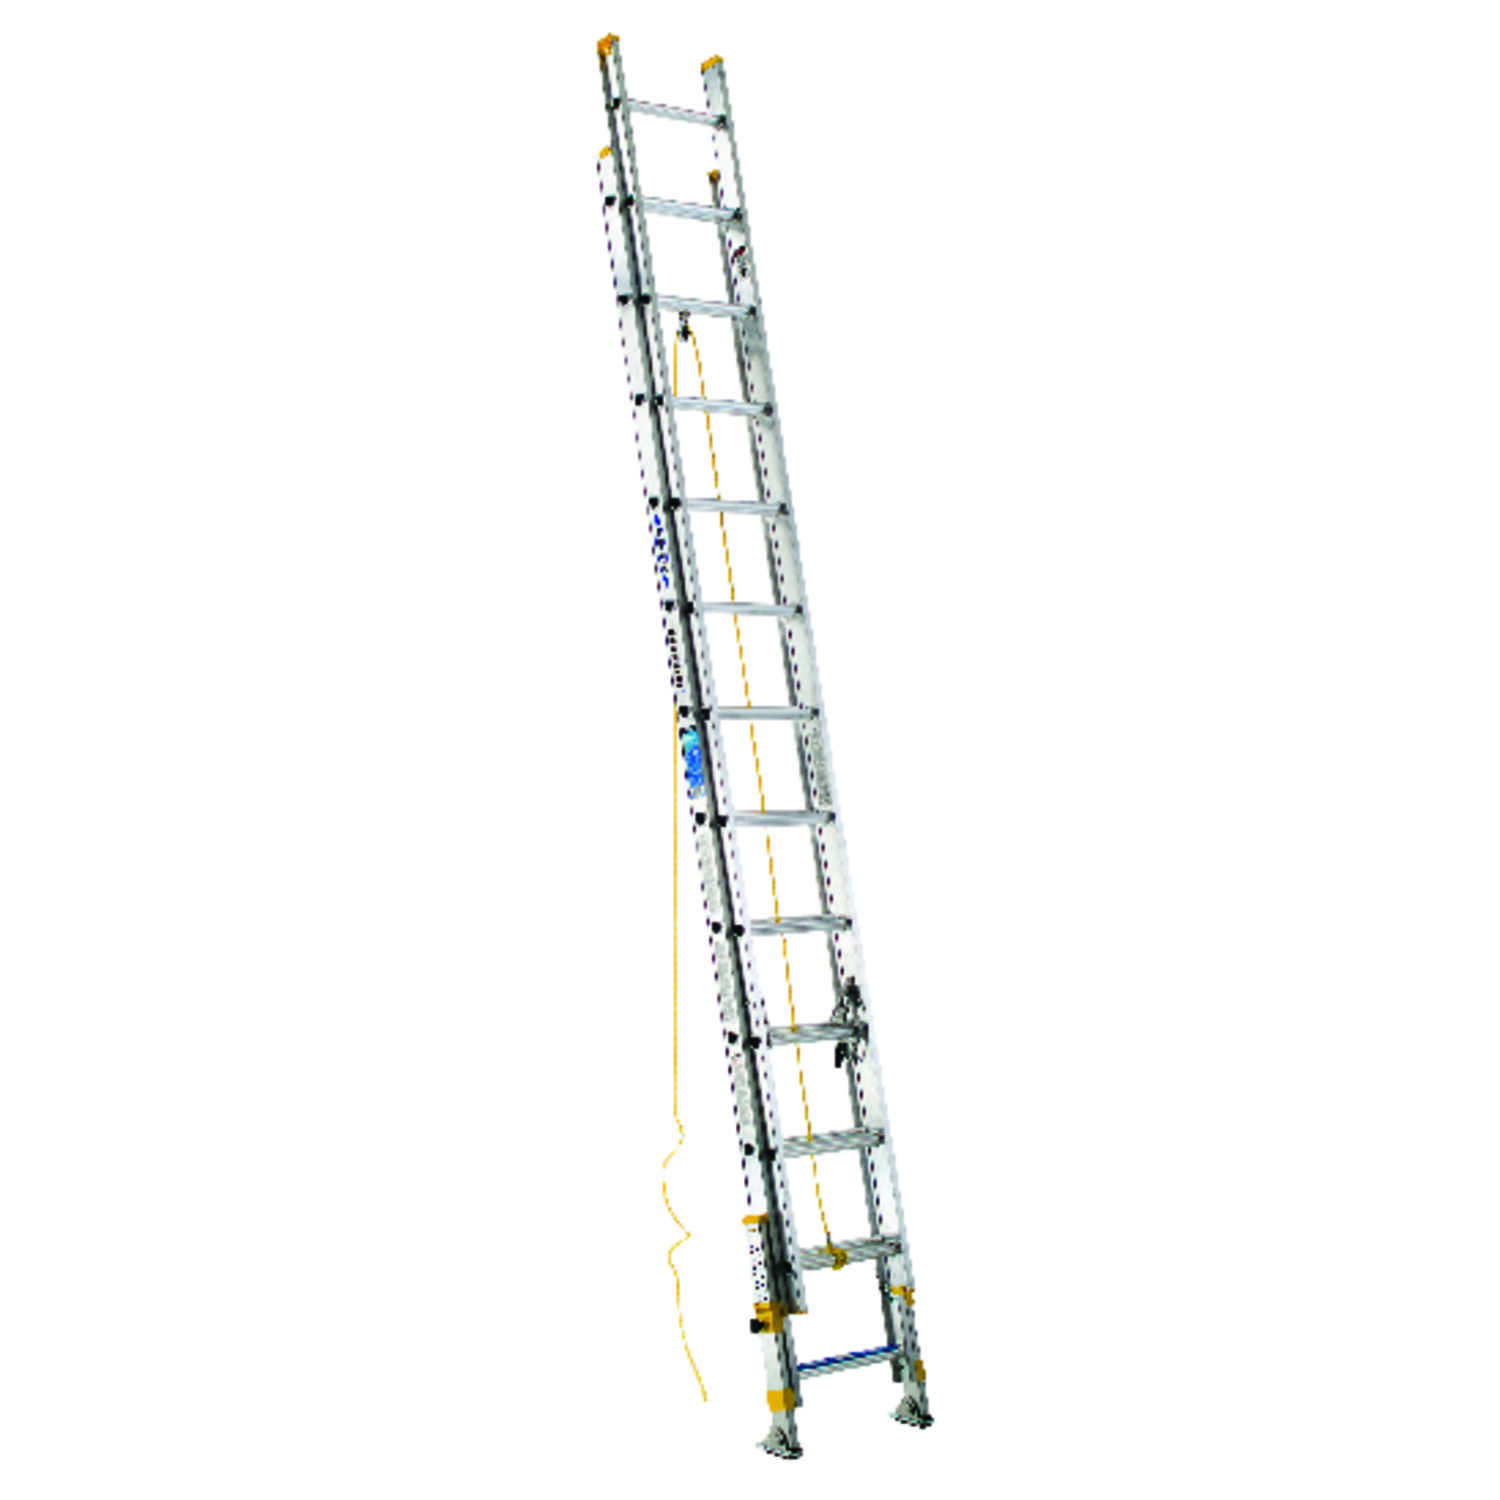 Werner  24 ft. H x 20.75 in. W Aluminum  Extension Ladder  Type I  250 lb.